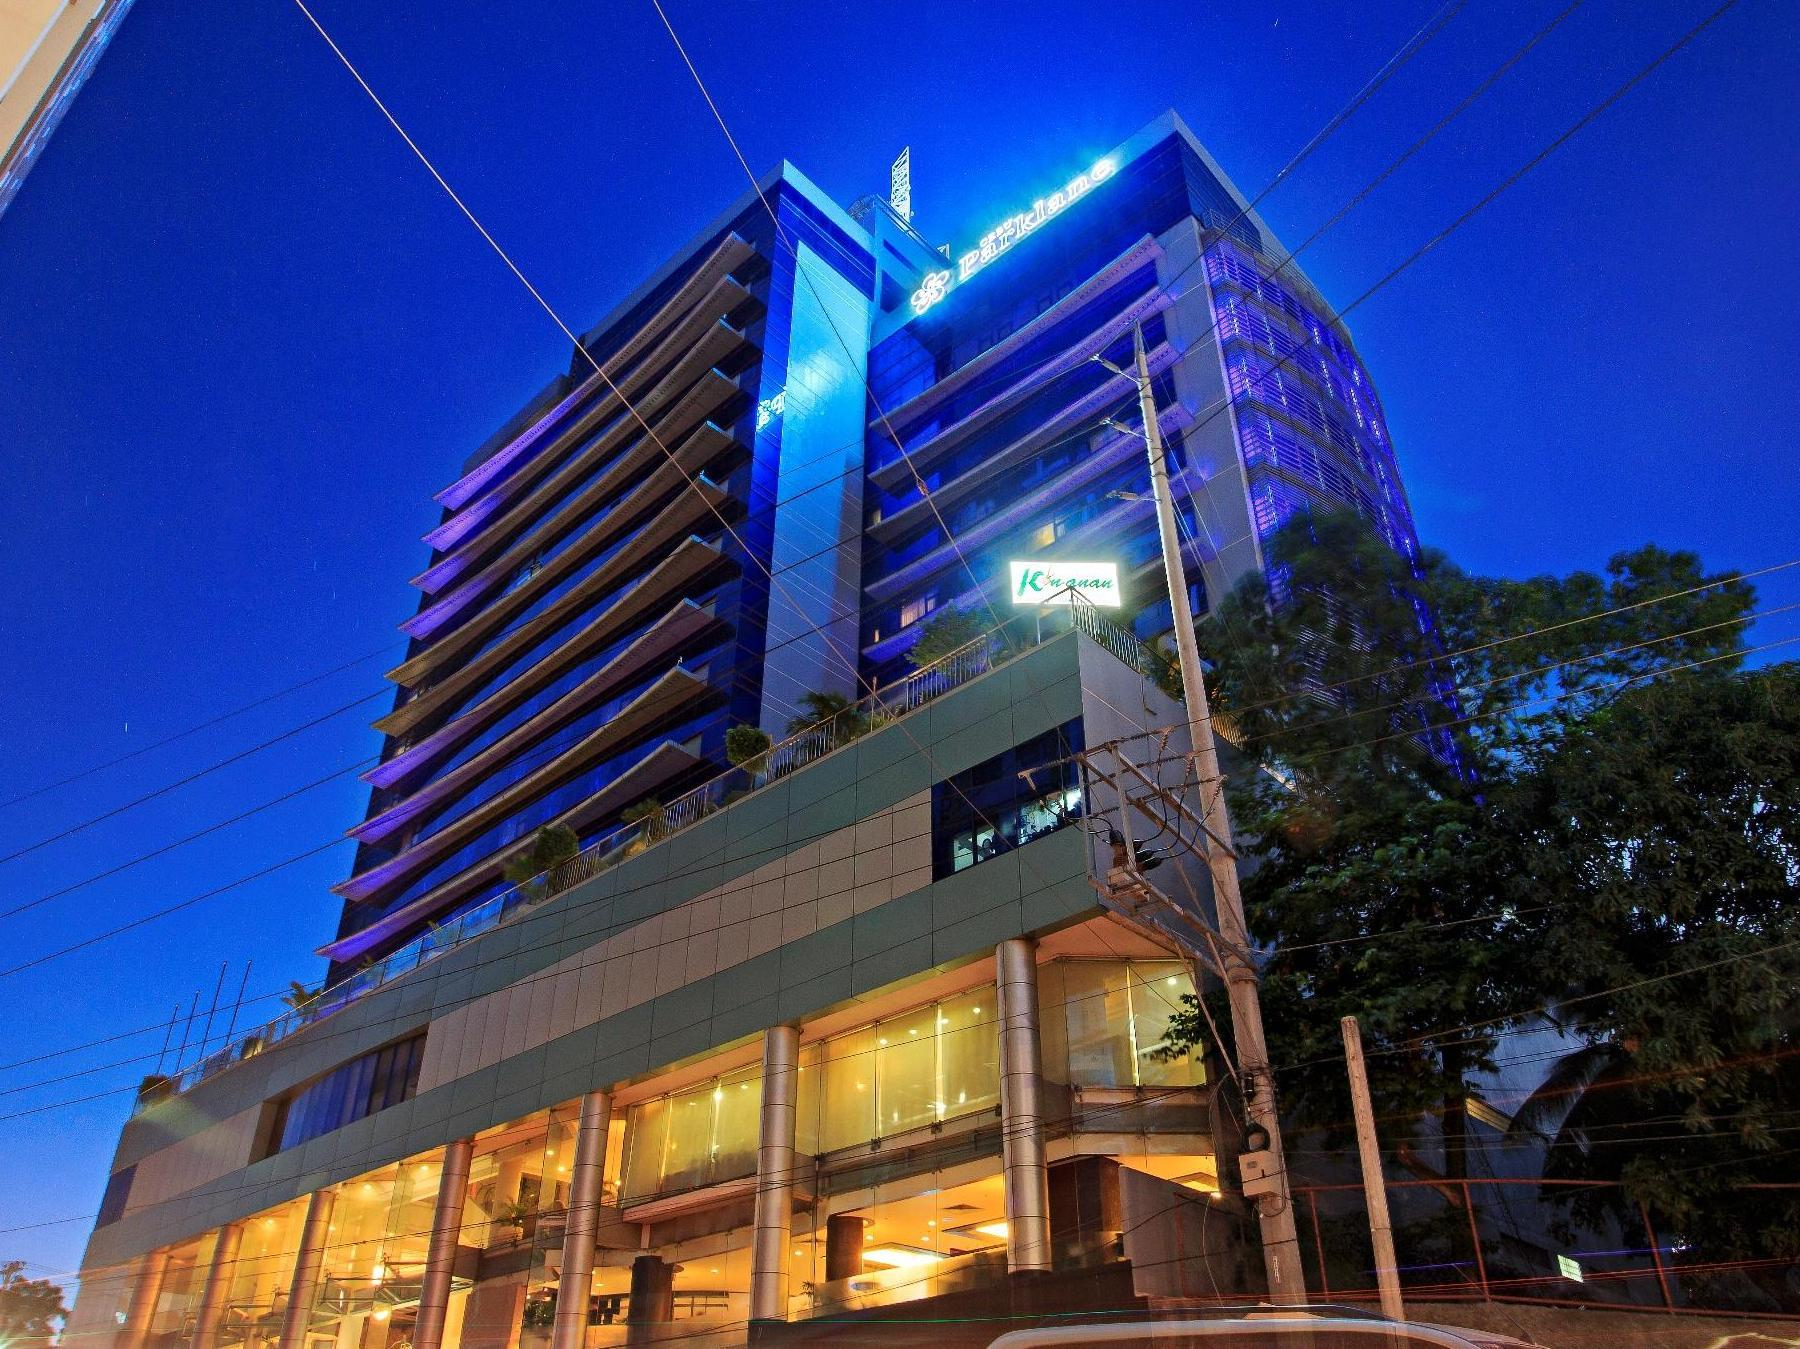 Cebu Parklane International Hotel Cebu - zunanjost hotela